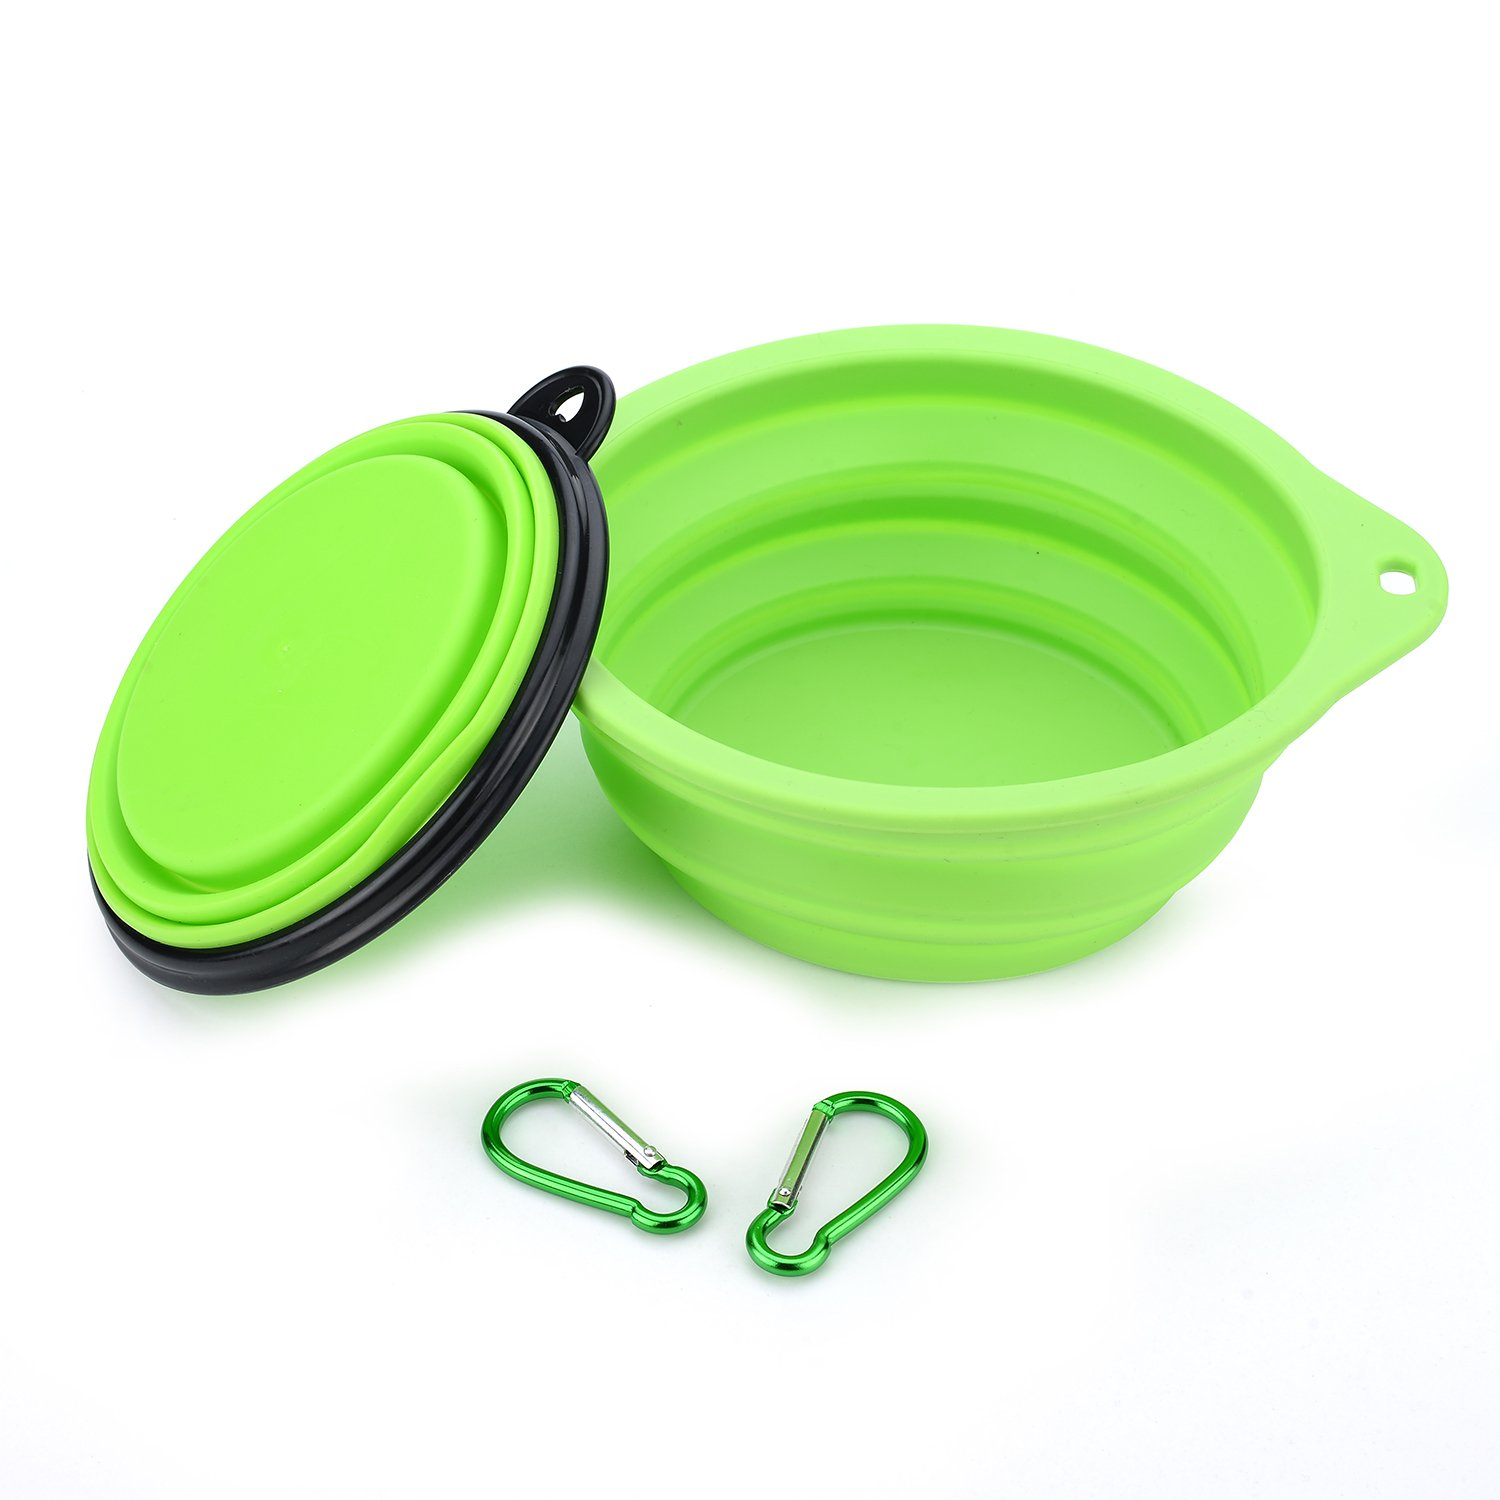 MR.BIGER IDEGGFood Grade Silicone Foldable Expandable Cup Dish for Pet Dog Food Water Feeding Portable, Travel Bowl, Collapsible Silicone Pet Bowl, A large one and a small one (GREEN)